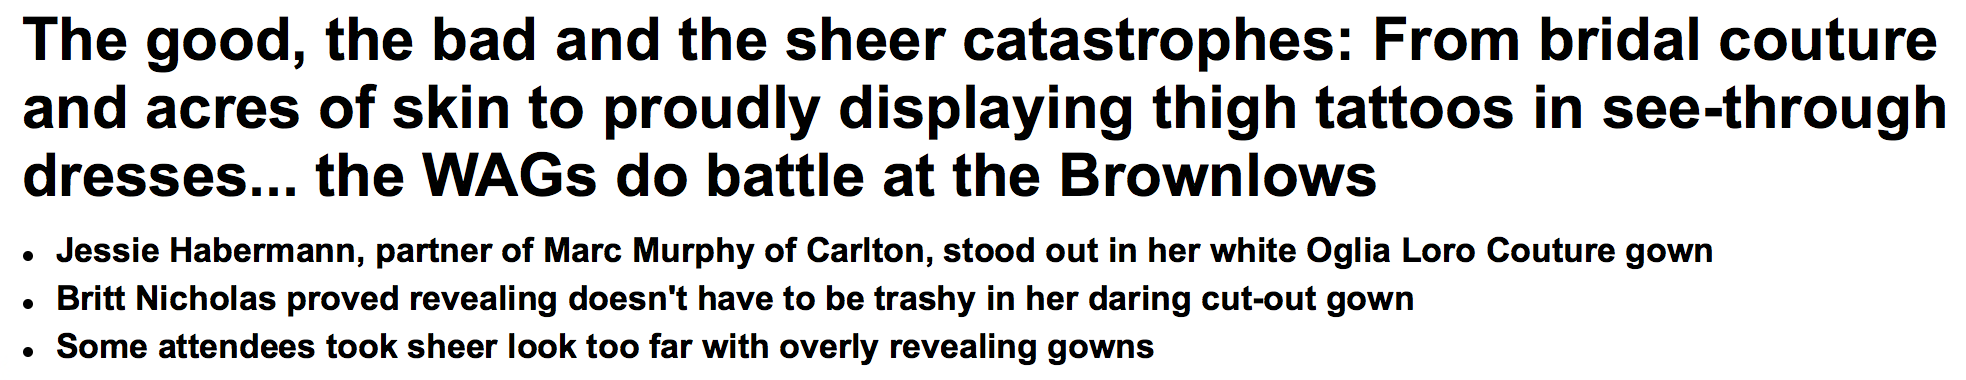 The Daily Mail showing why it's one of the most widely reviled news outlets in the world.